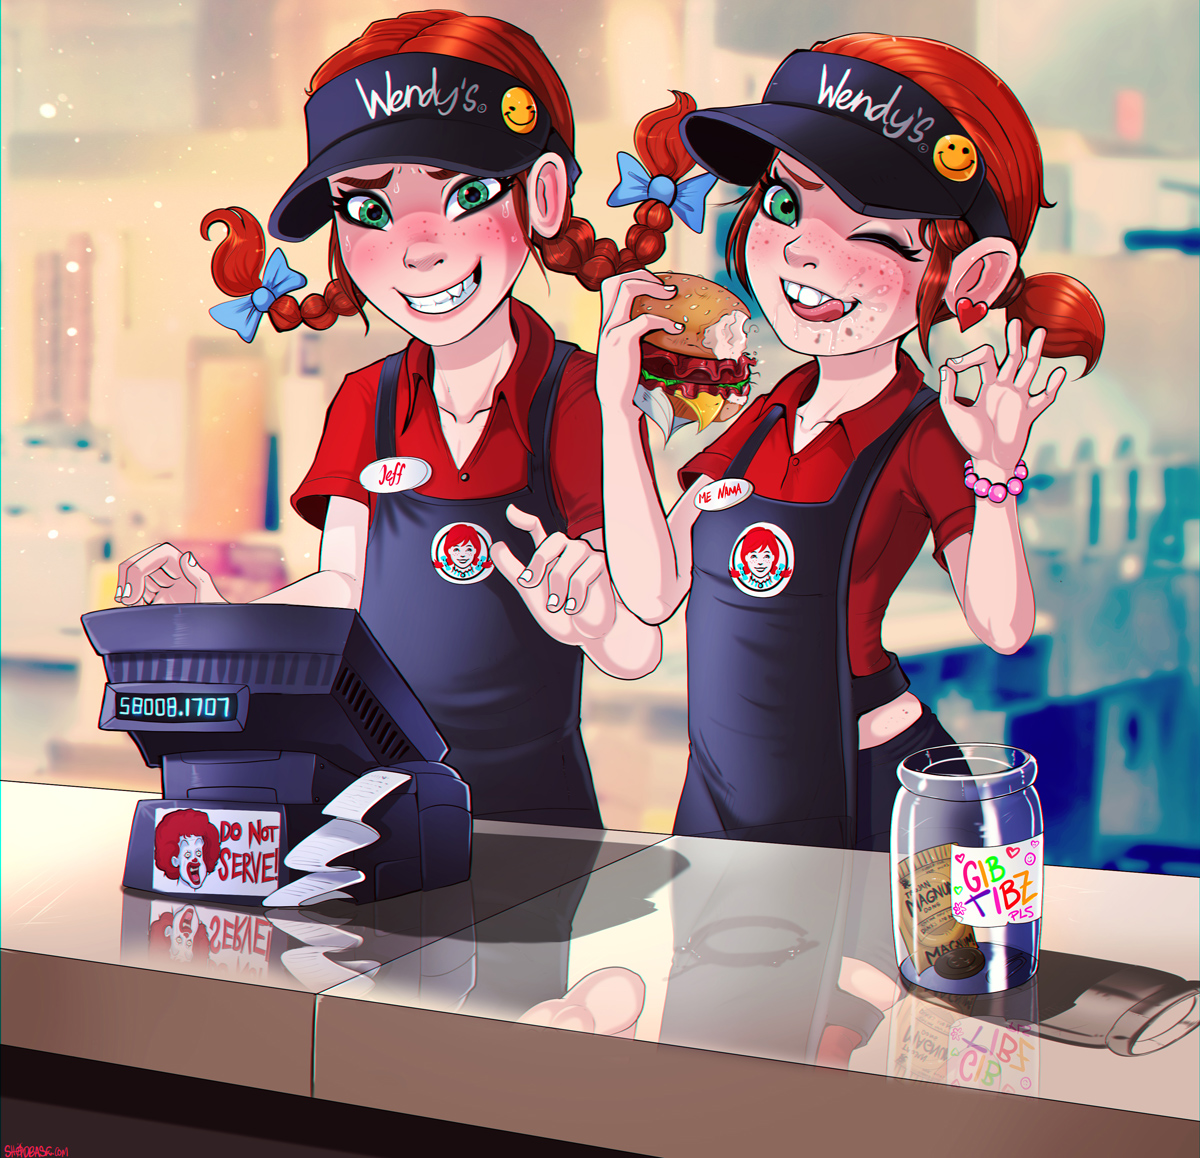 Smol Wendy's Employees